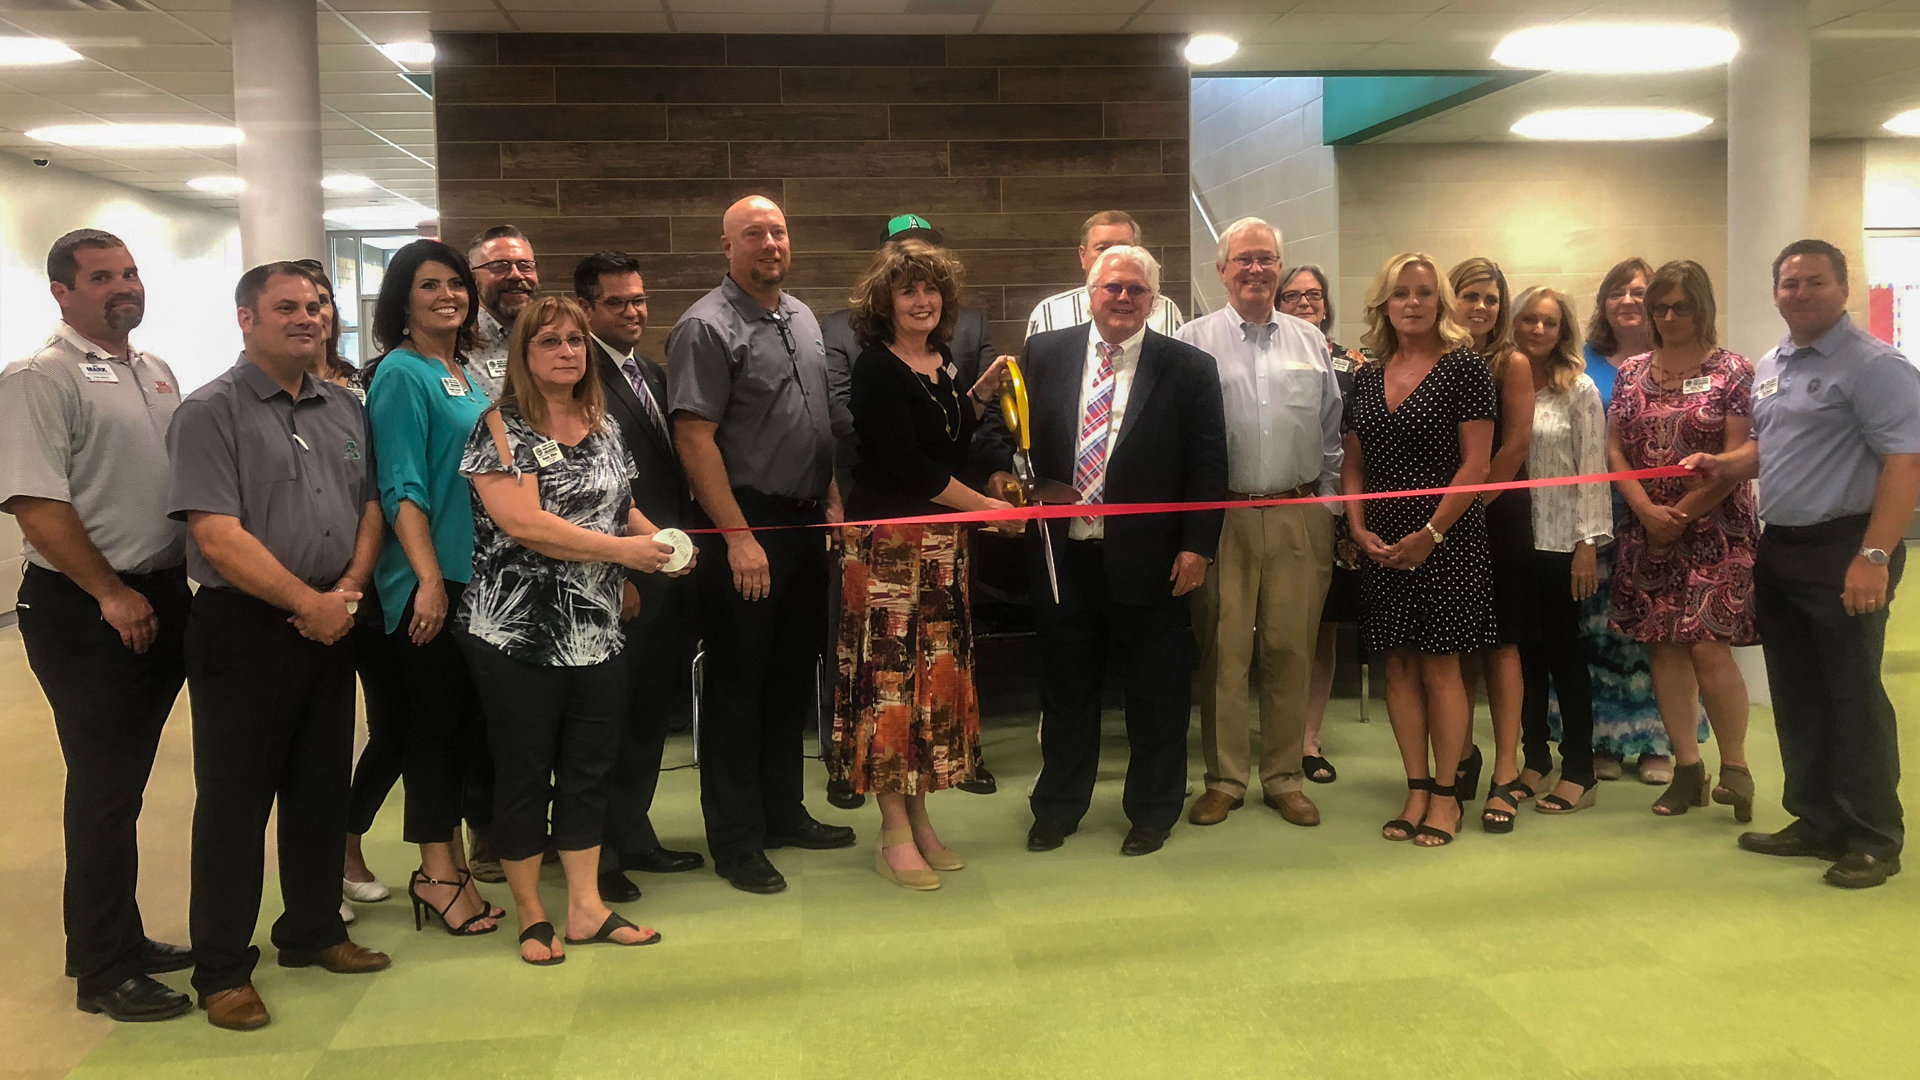 Walnut_Creek_RibbonCutting_02.jpg#asset:6887